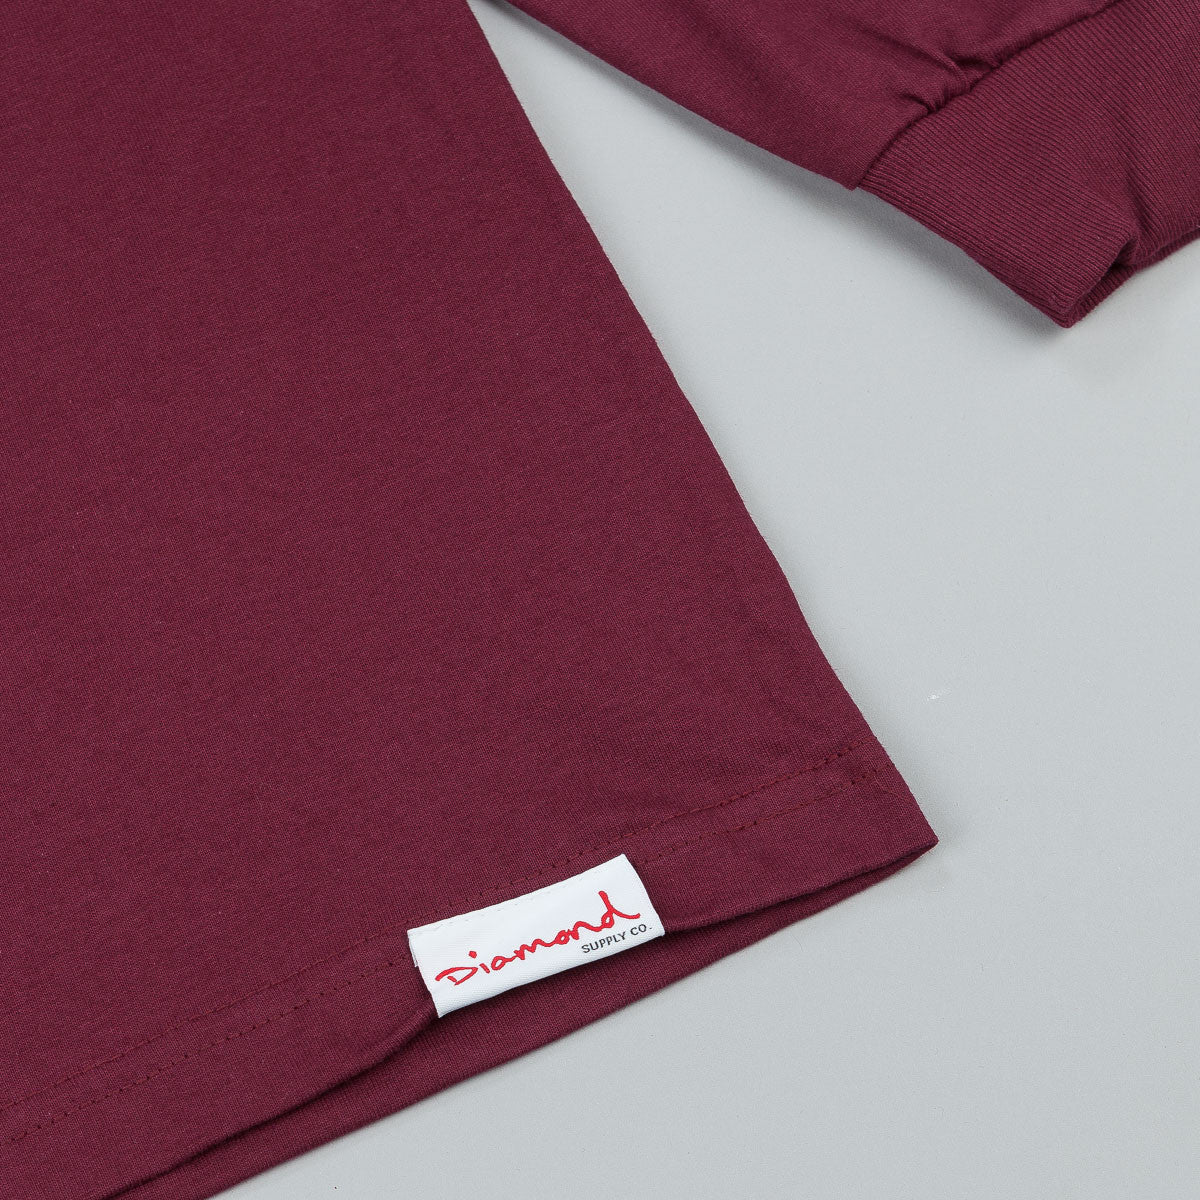 Diamond Hardware Lock Long Sleeve T-Shirt - Burgundy